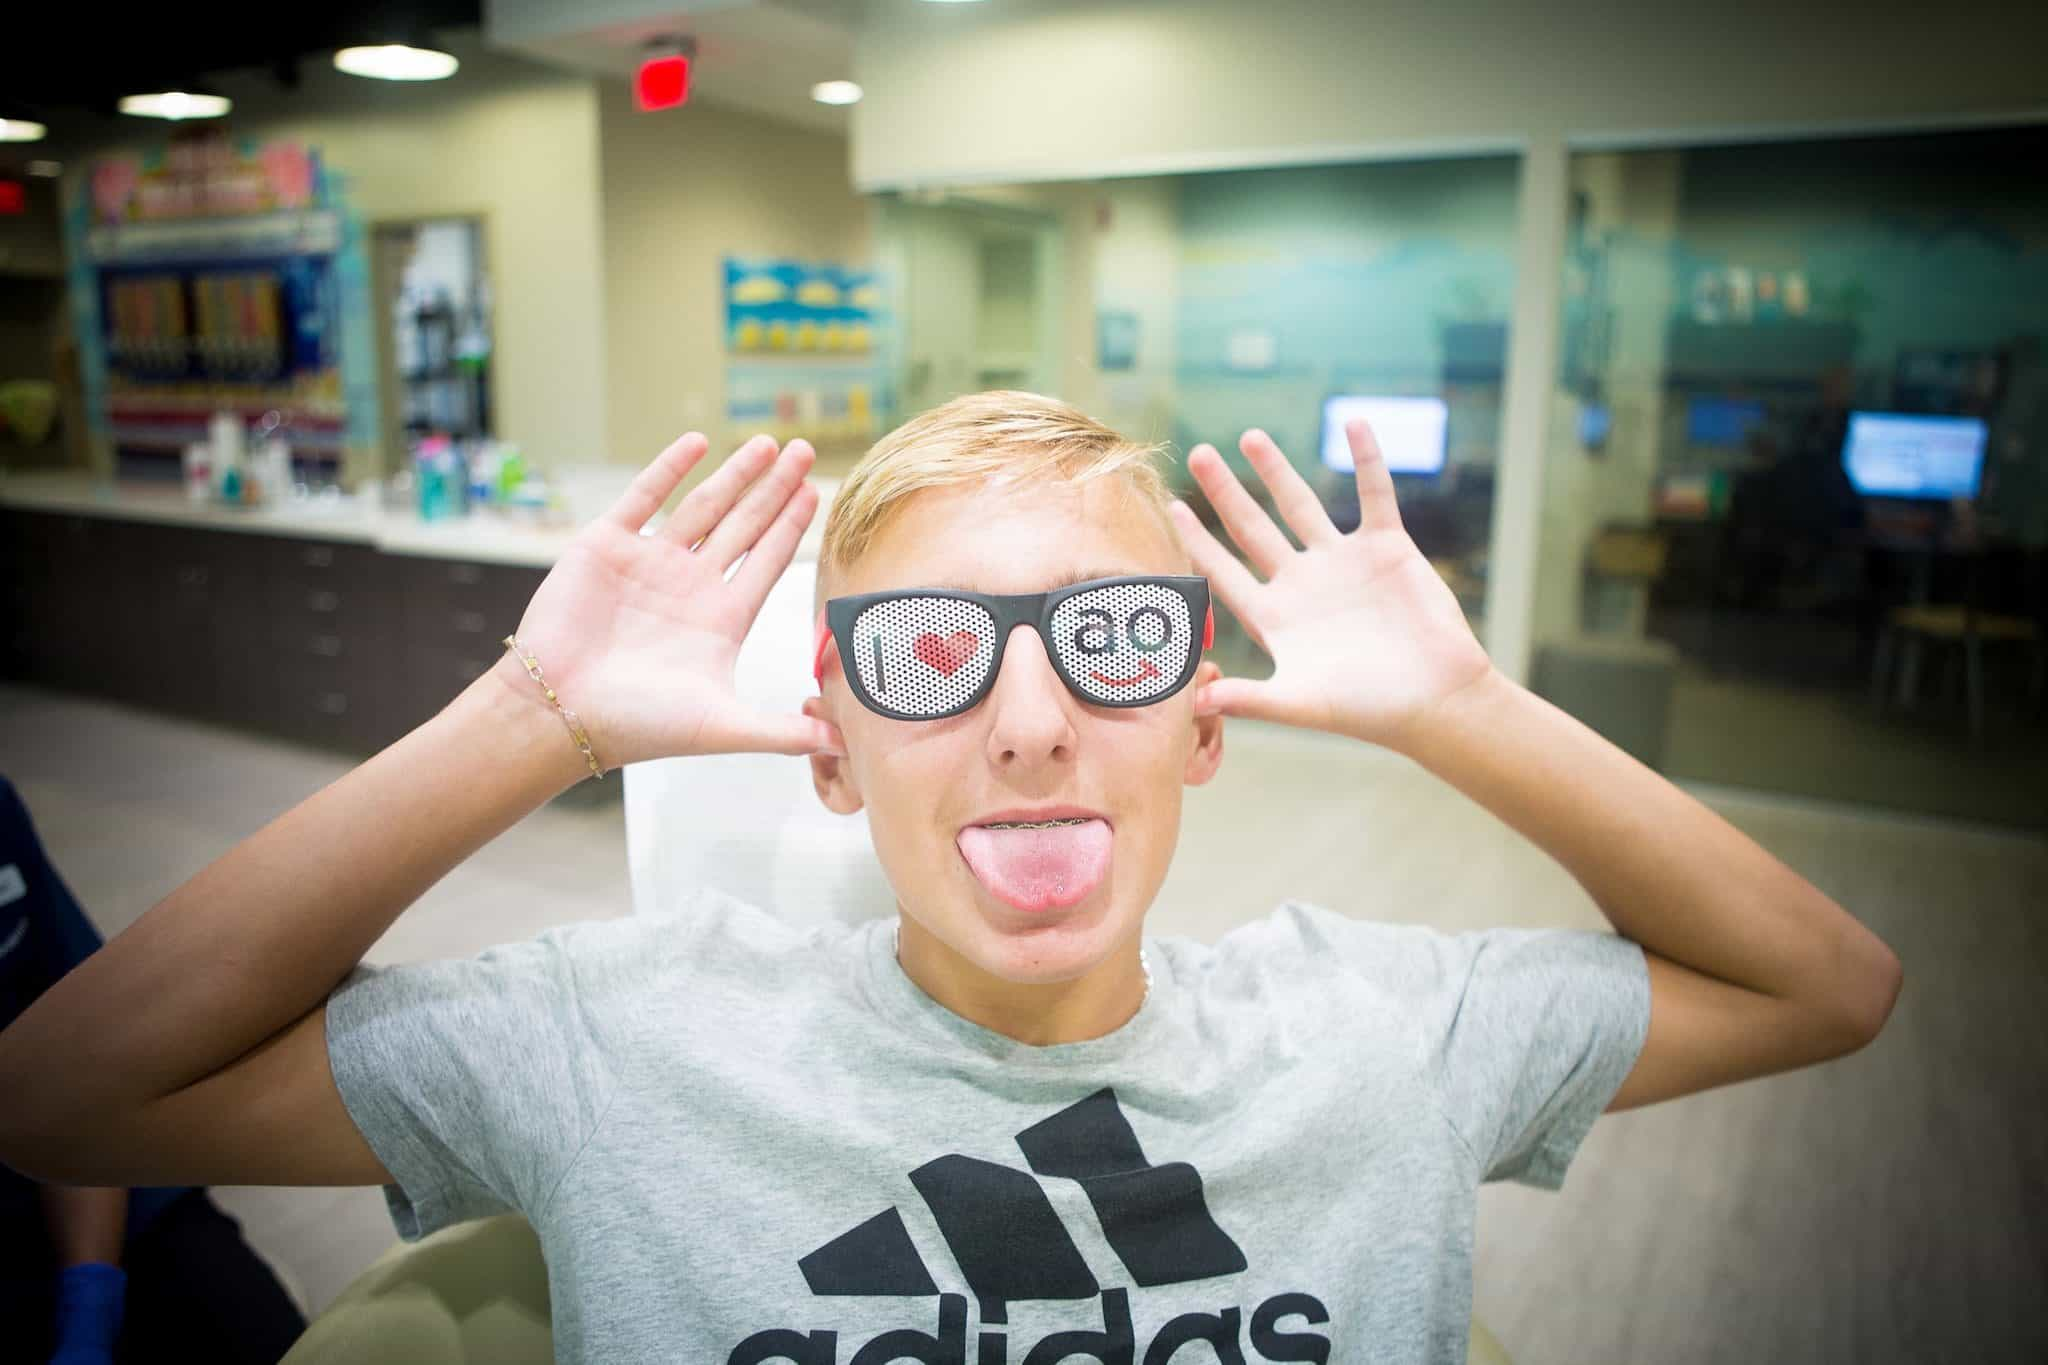 Appel Orthodontics Philadelphia Orthodontics Dr. Appel 14 2048x1365 - We Like To Have Fun